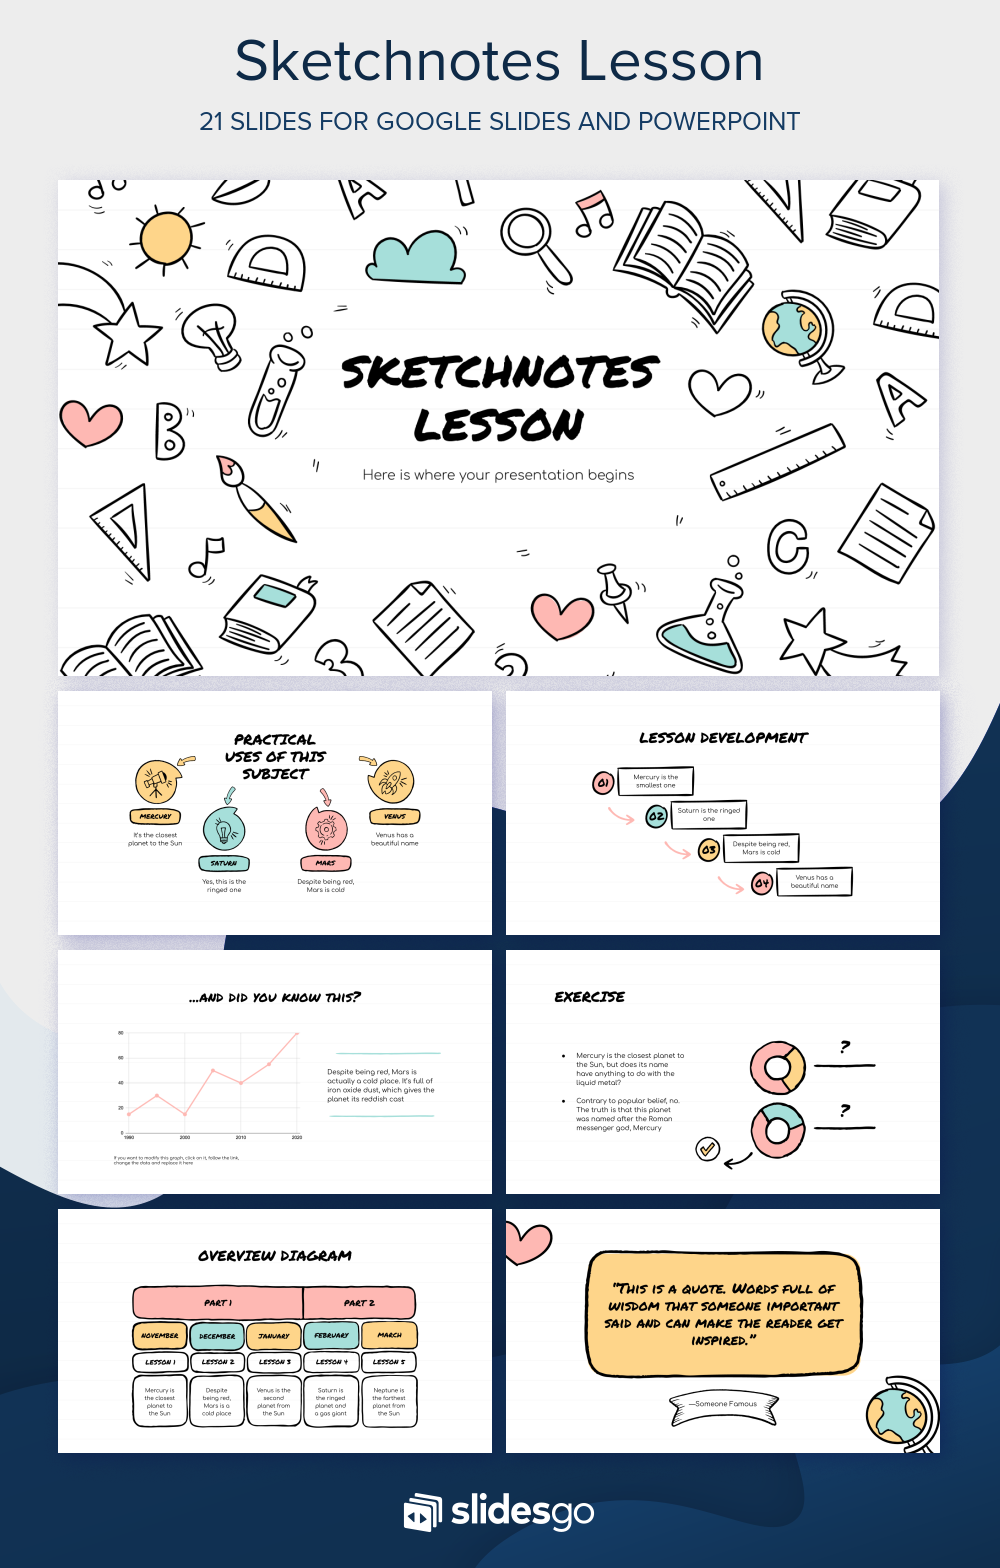 Turn Your Lesson Into An Easy Teaching Experience With Thi Free Sketchnot In 2020 Powerpoint Presentation Design Template Cute Templates How To Read A Medical Journal Article Ppt